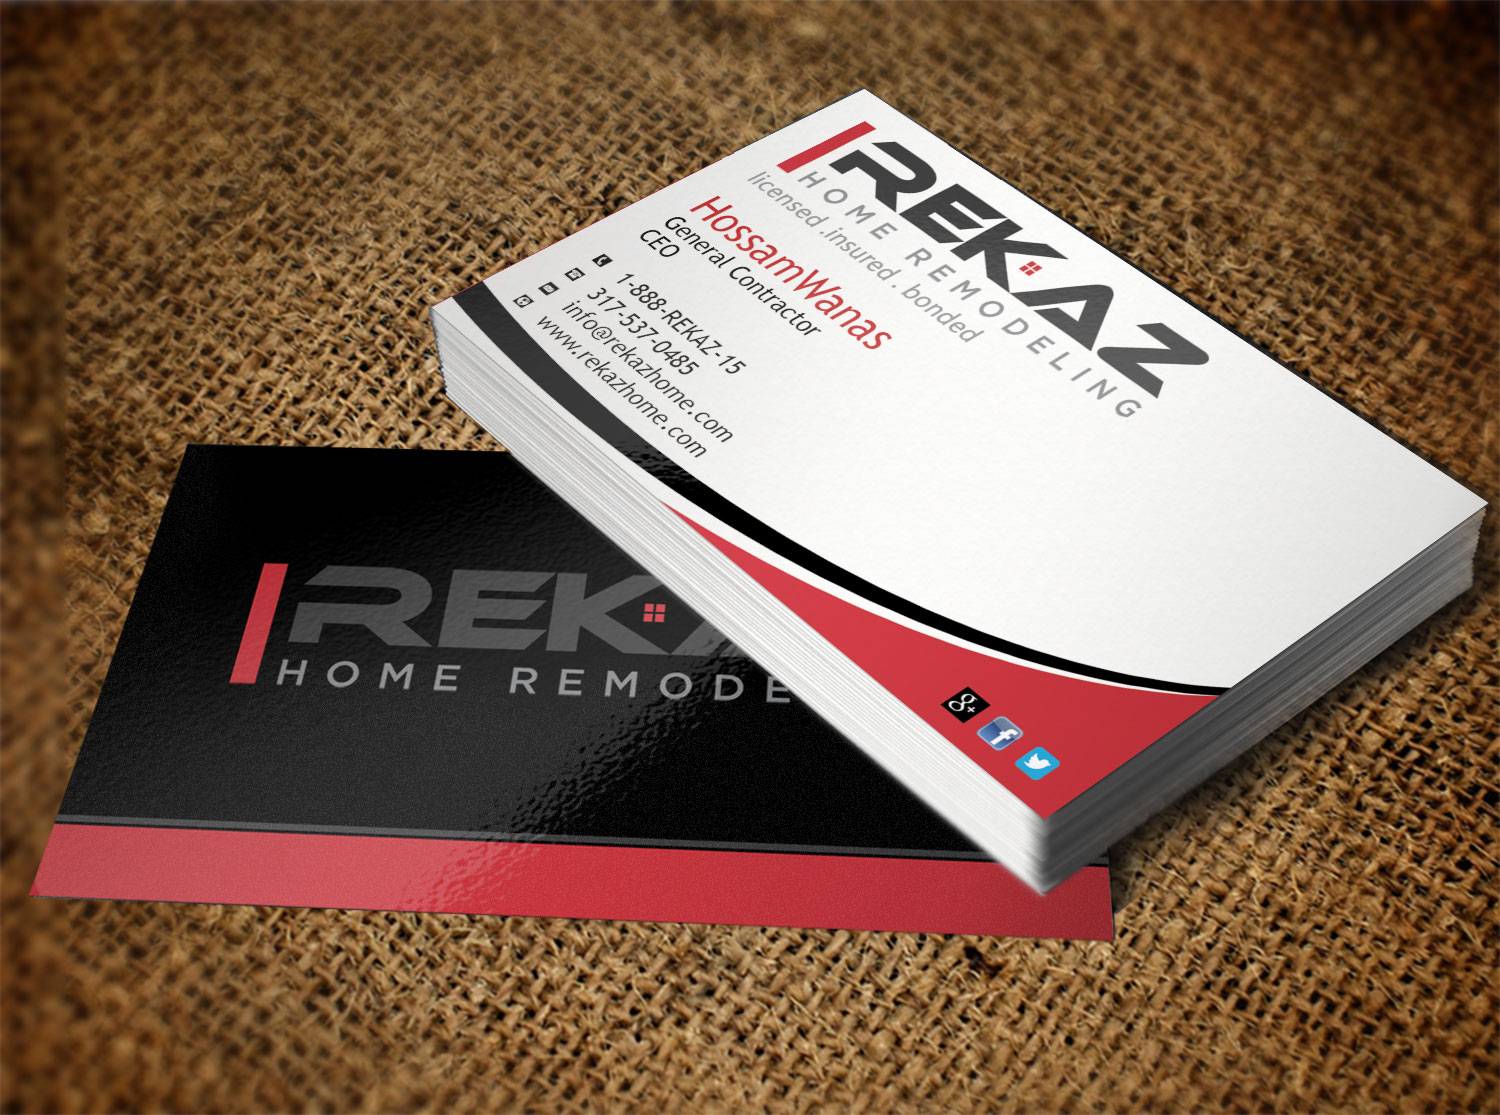 Business card design for rekaz llc by pawana design 9563107 business card design by pawana for home remodeling company needs a business card design design magicingreecefo Image collections